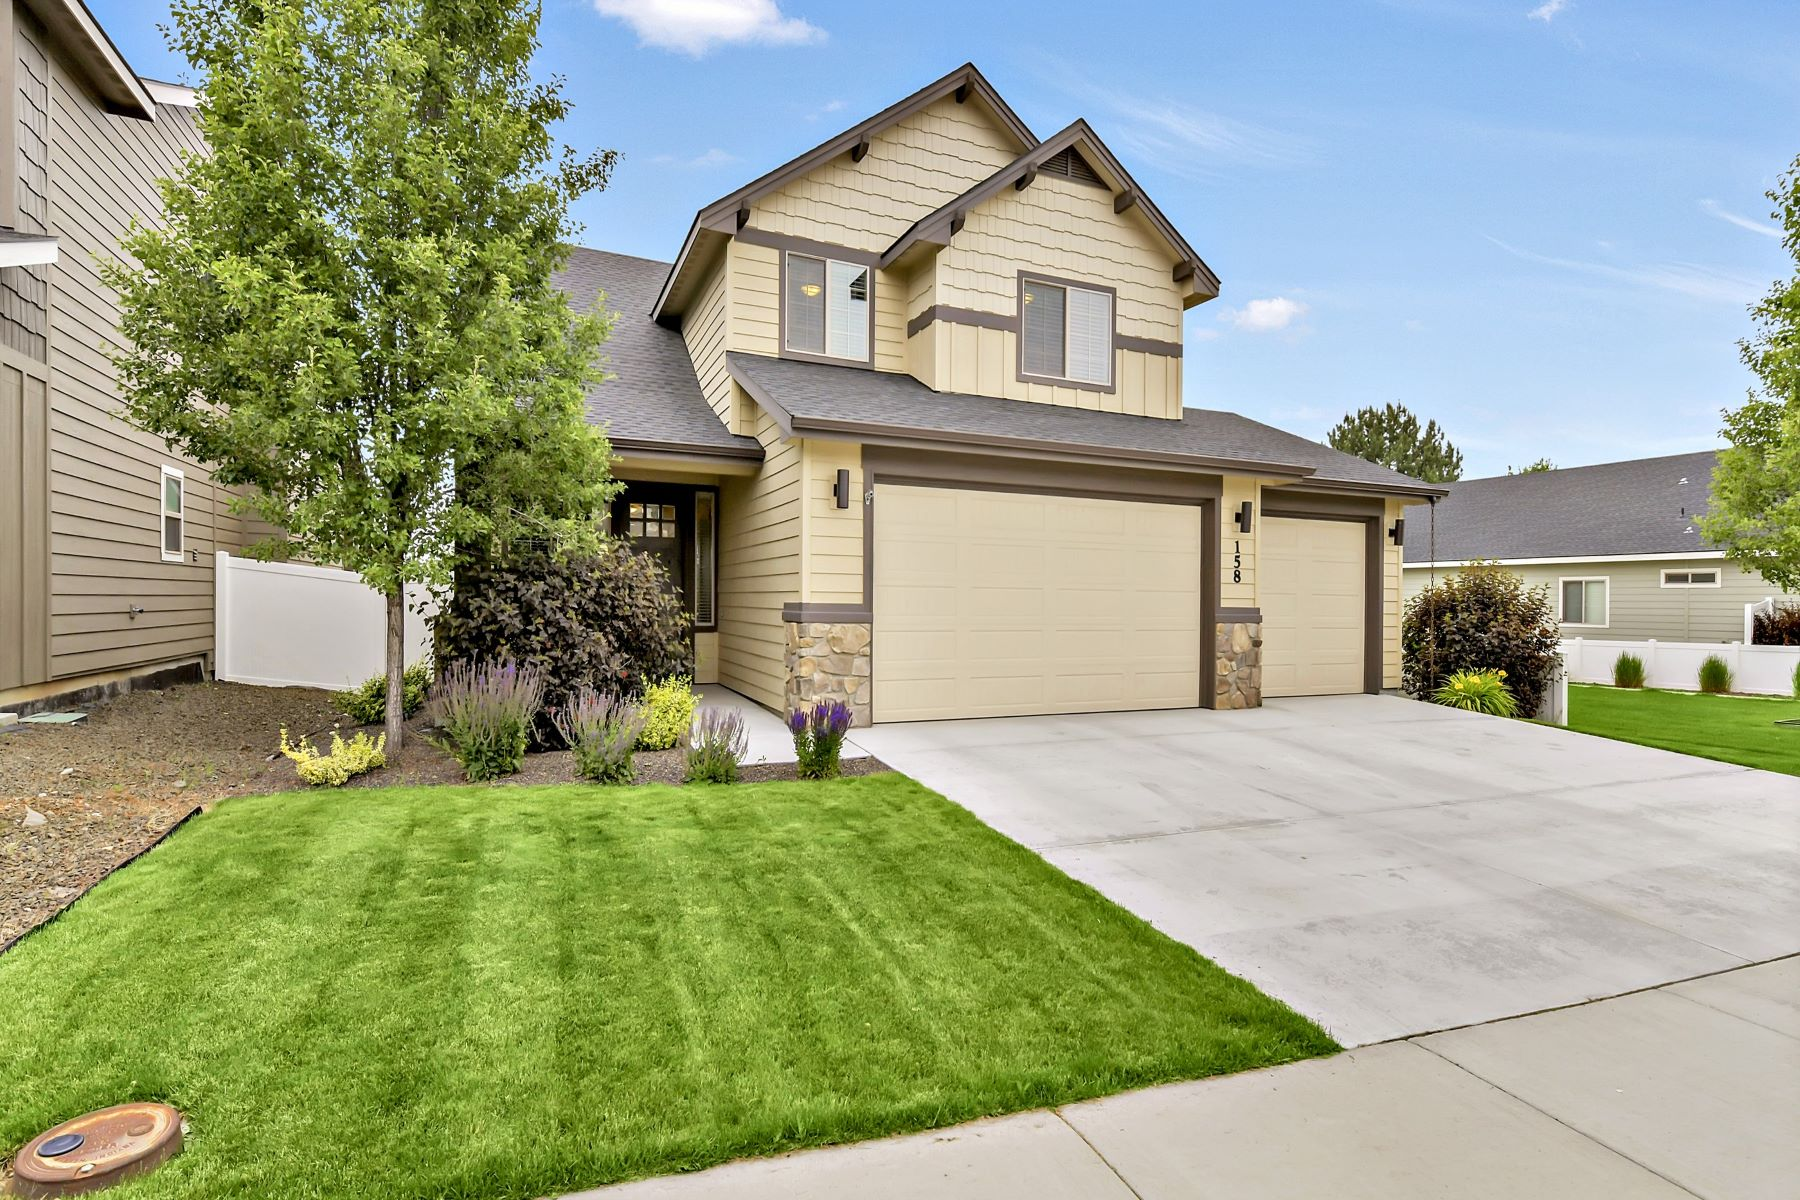 Single Family Homes for Active at 158 Whitehall Meridian, Idaho 83642 United States